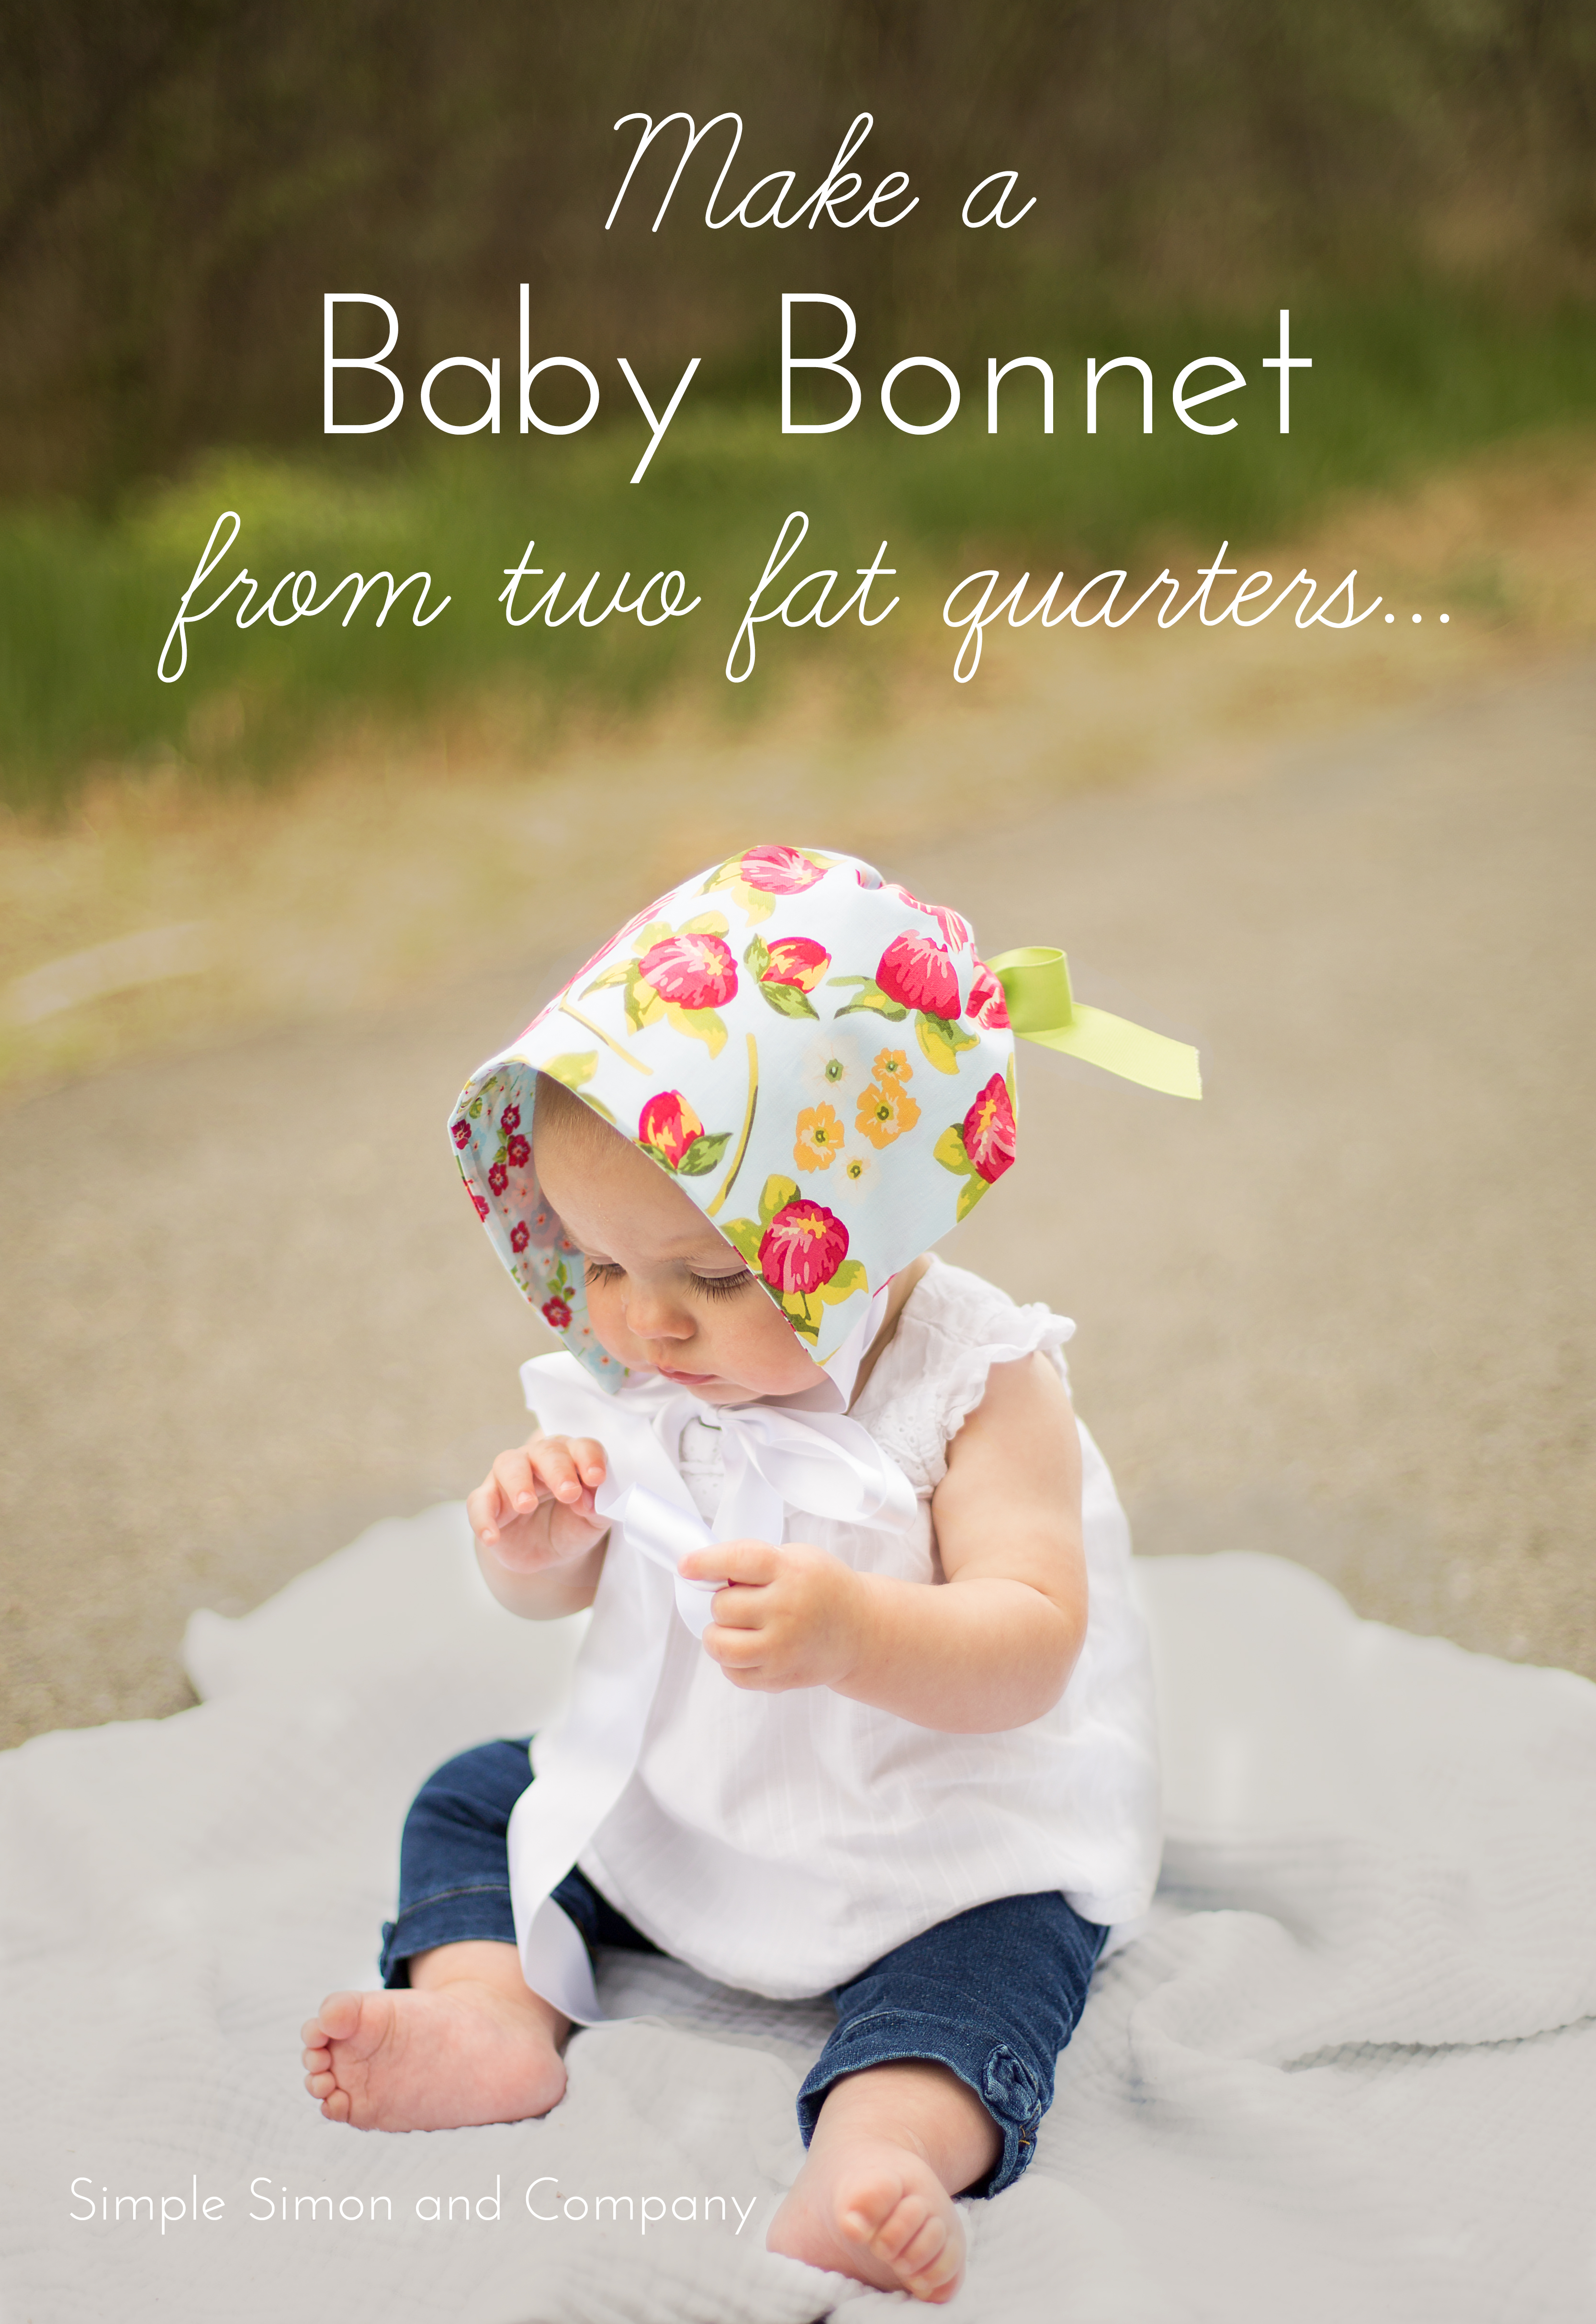 7abc4040768 Make a Baby Bonnet from Two Fat Quarters - Simple Simon and Company